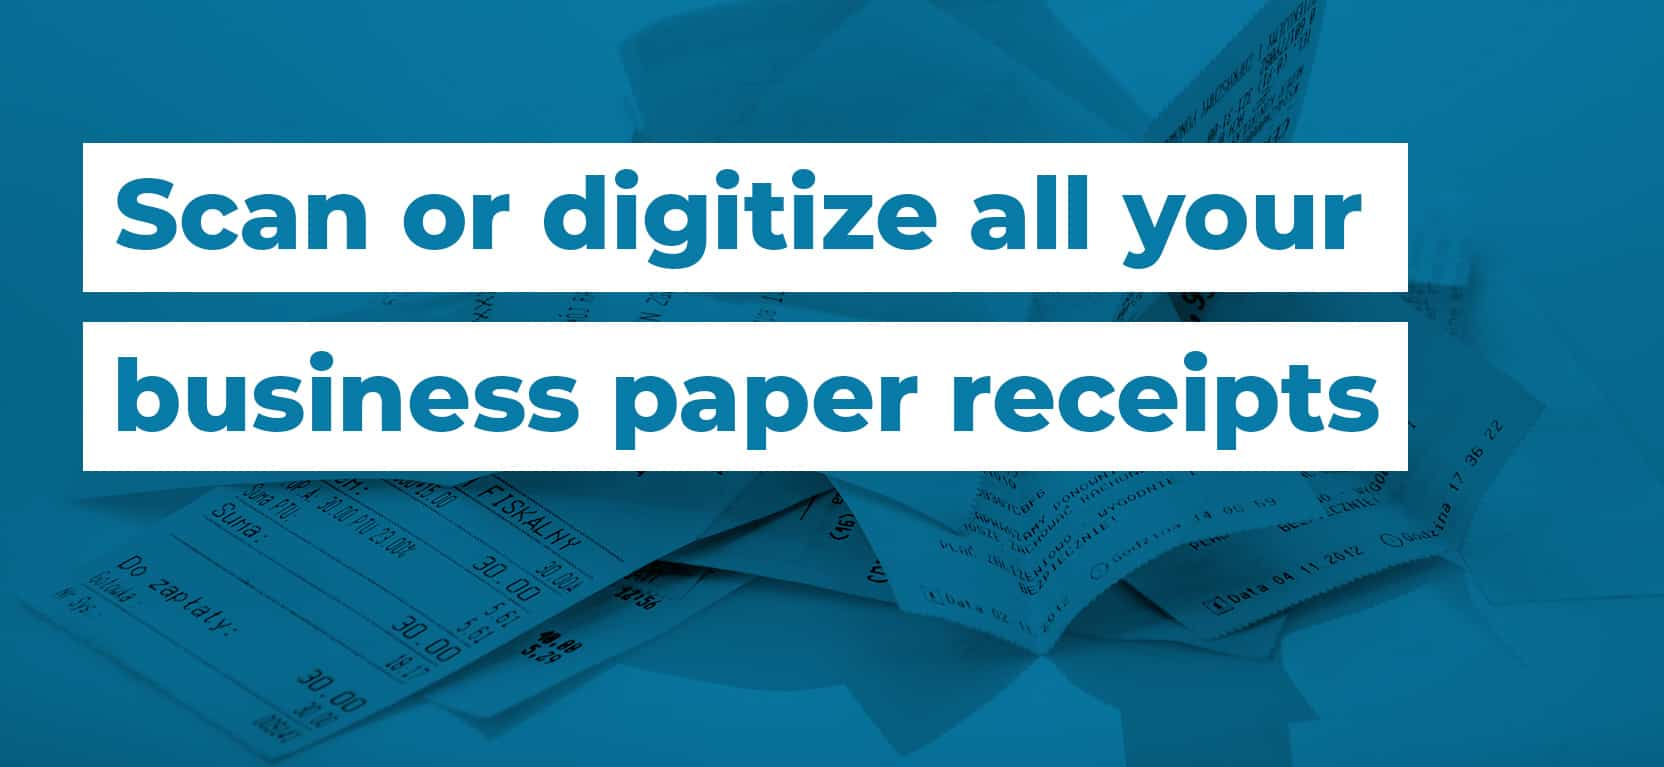 20 Scan or digitize all your business paper receipts3